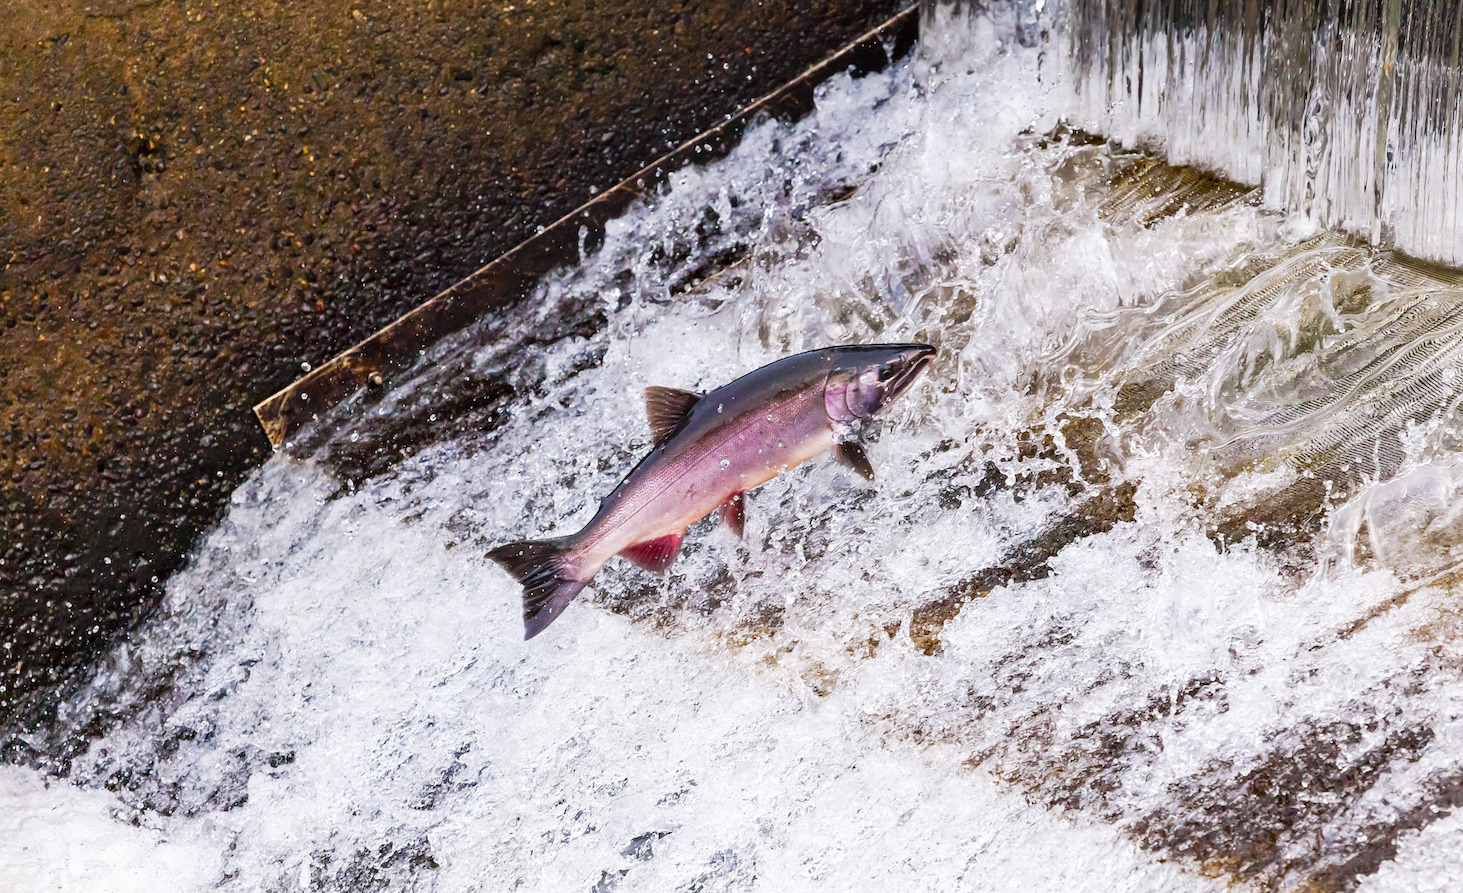 The salmon hatchery that decided to truck their fish to the ocean are now facing severely depleted reproduction numbers.